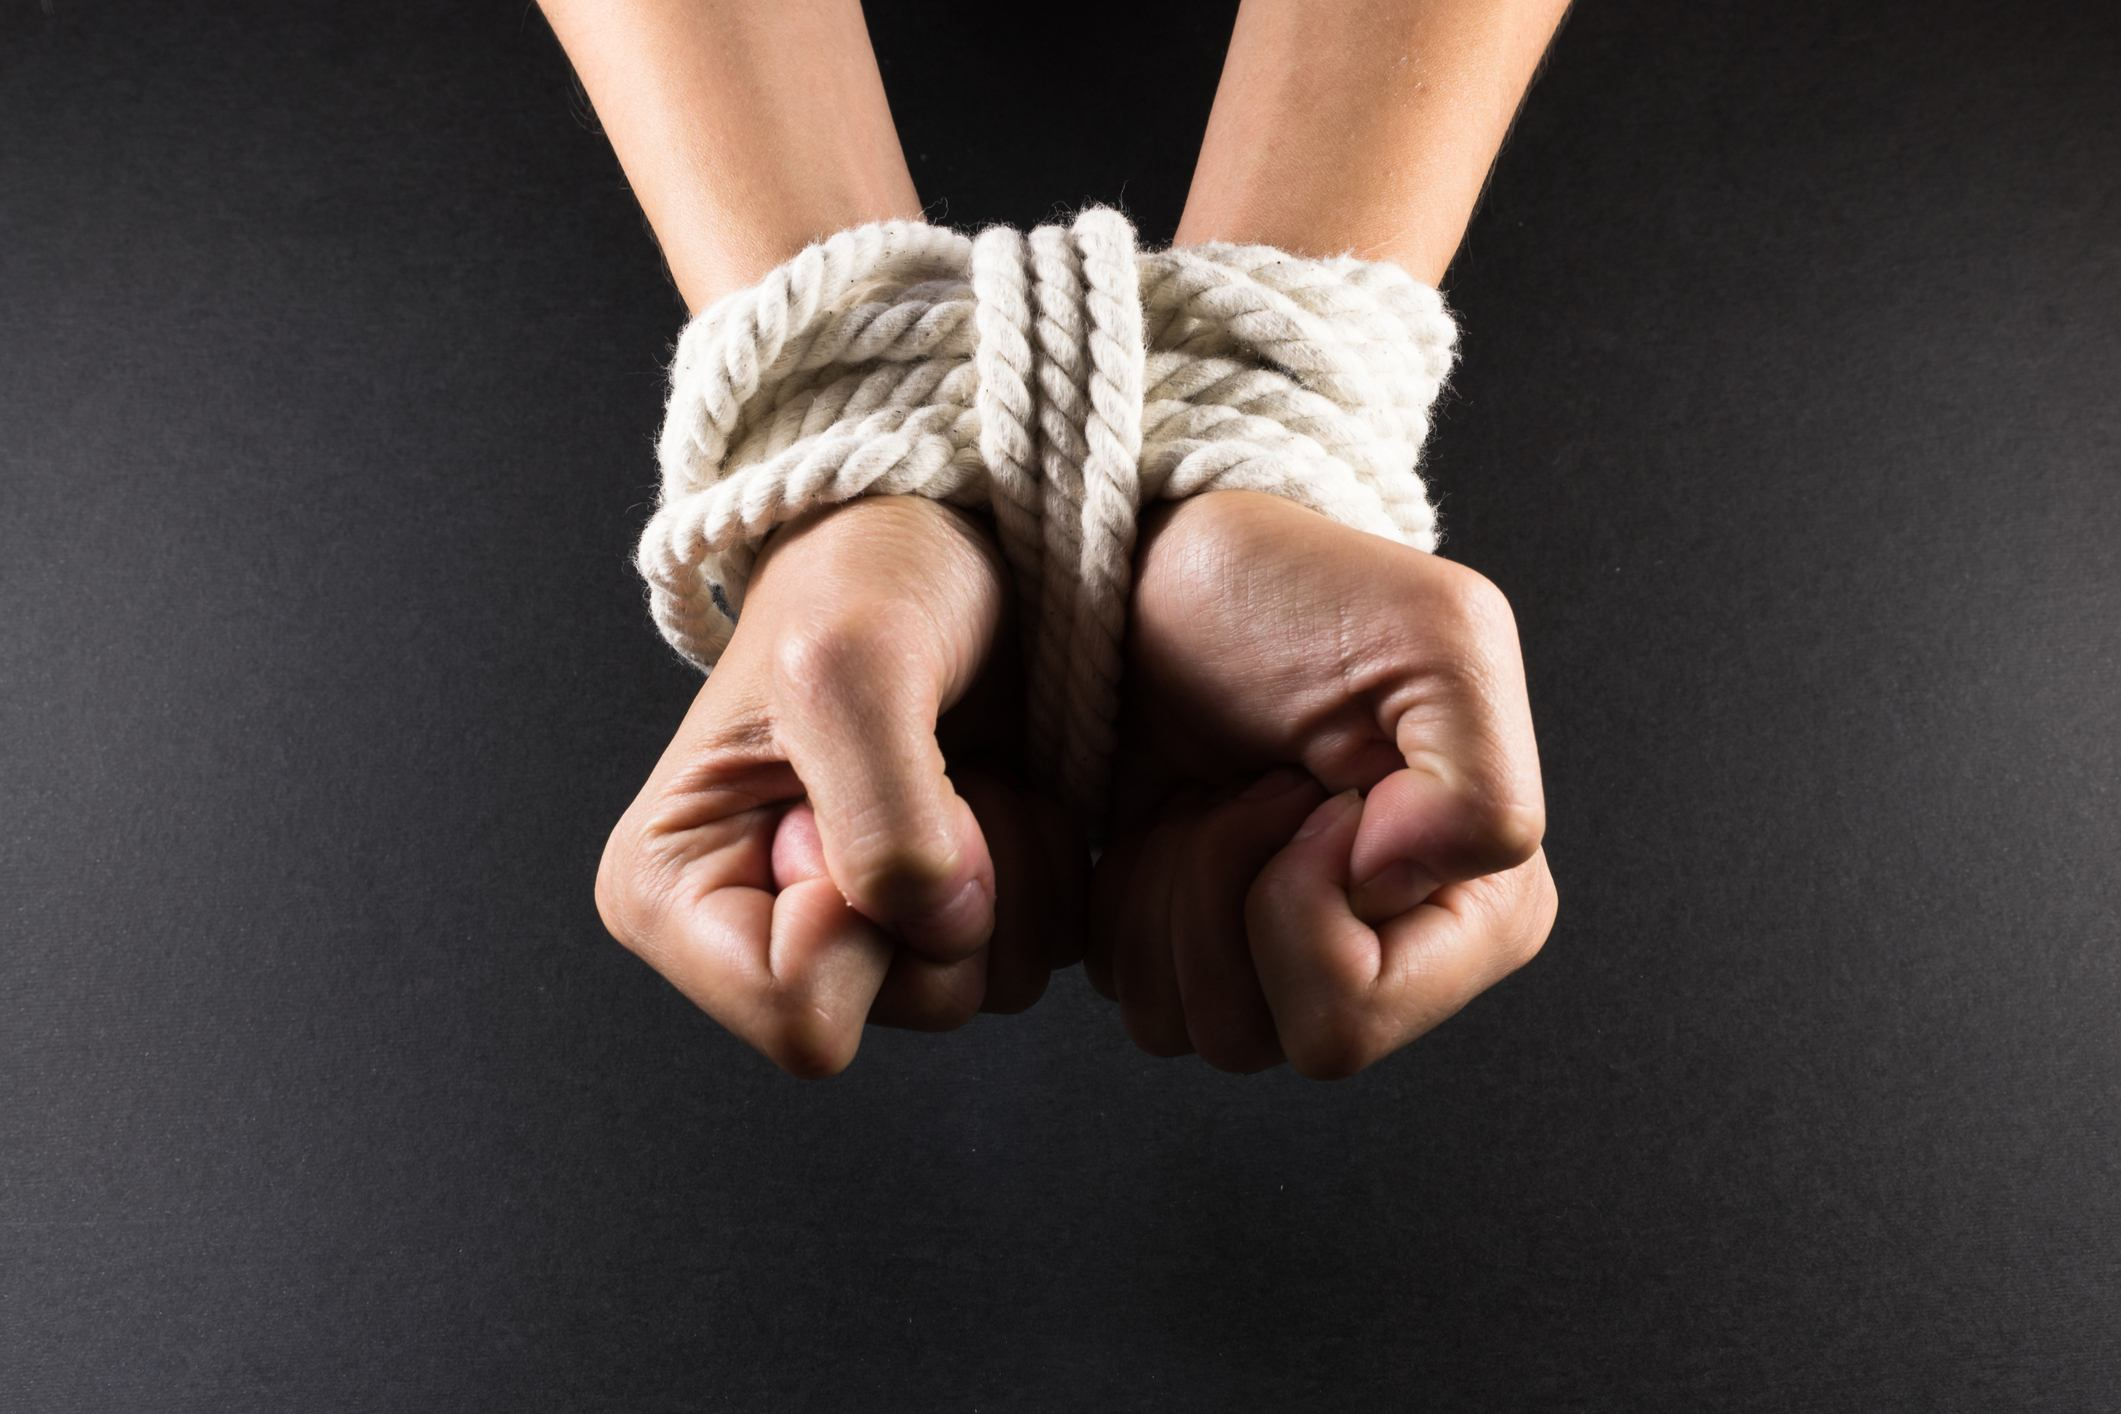 White hands bound with rope